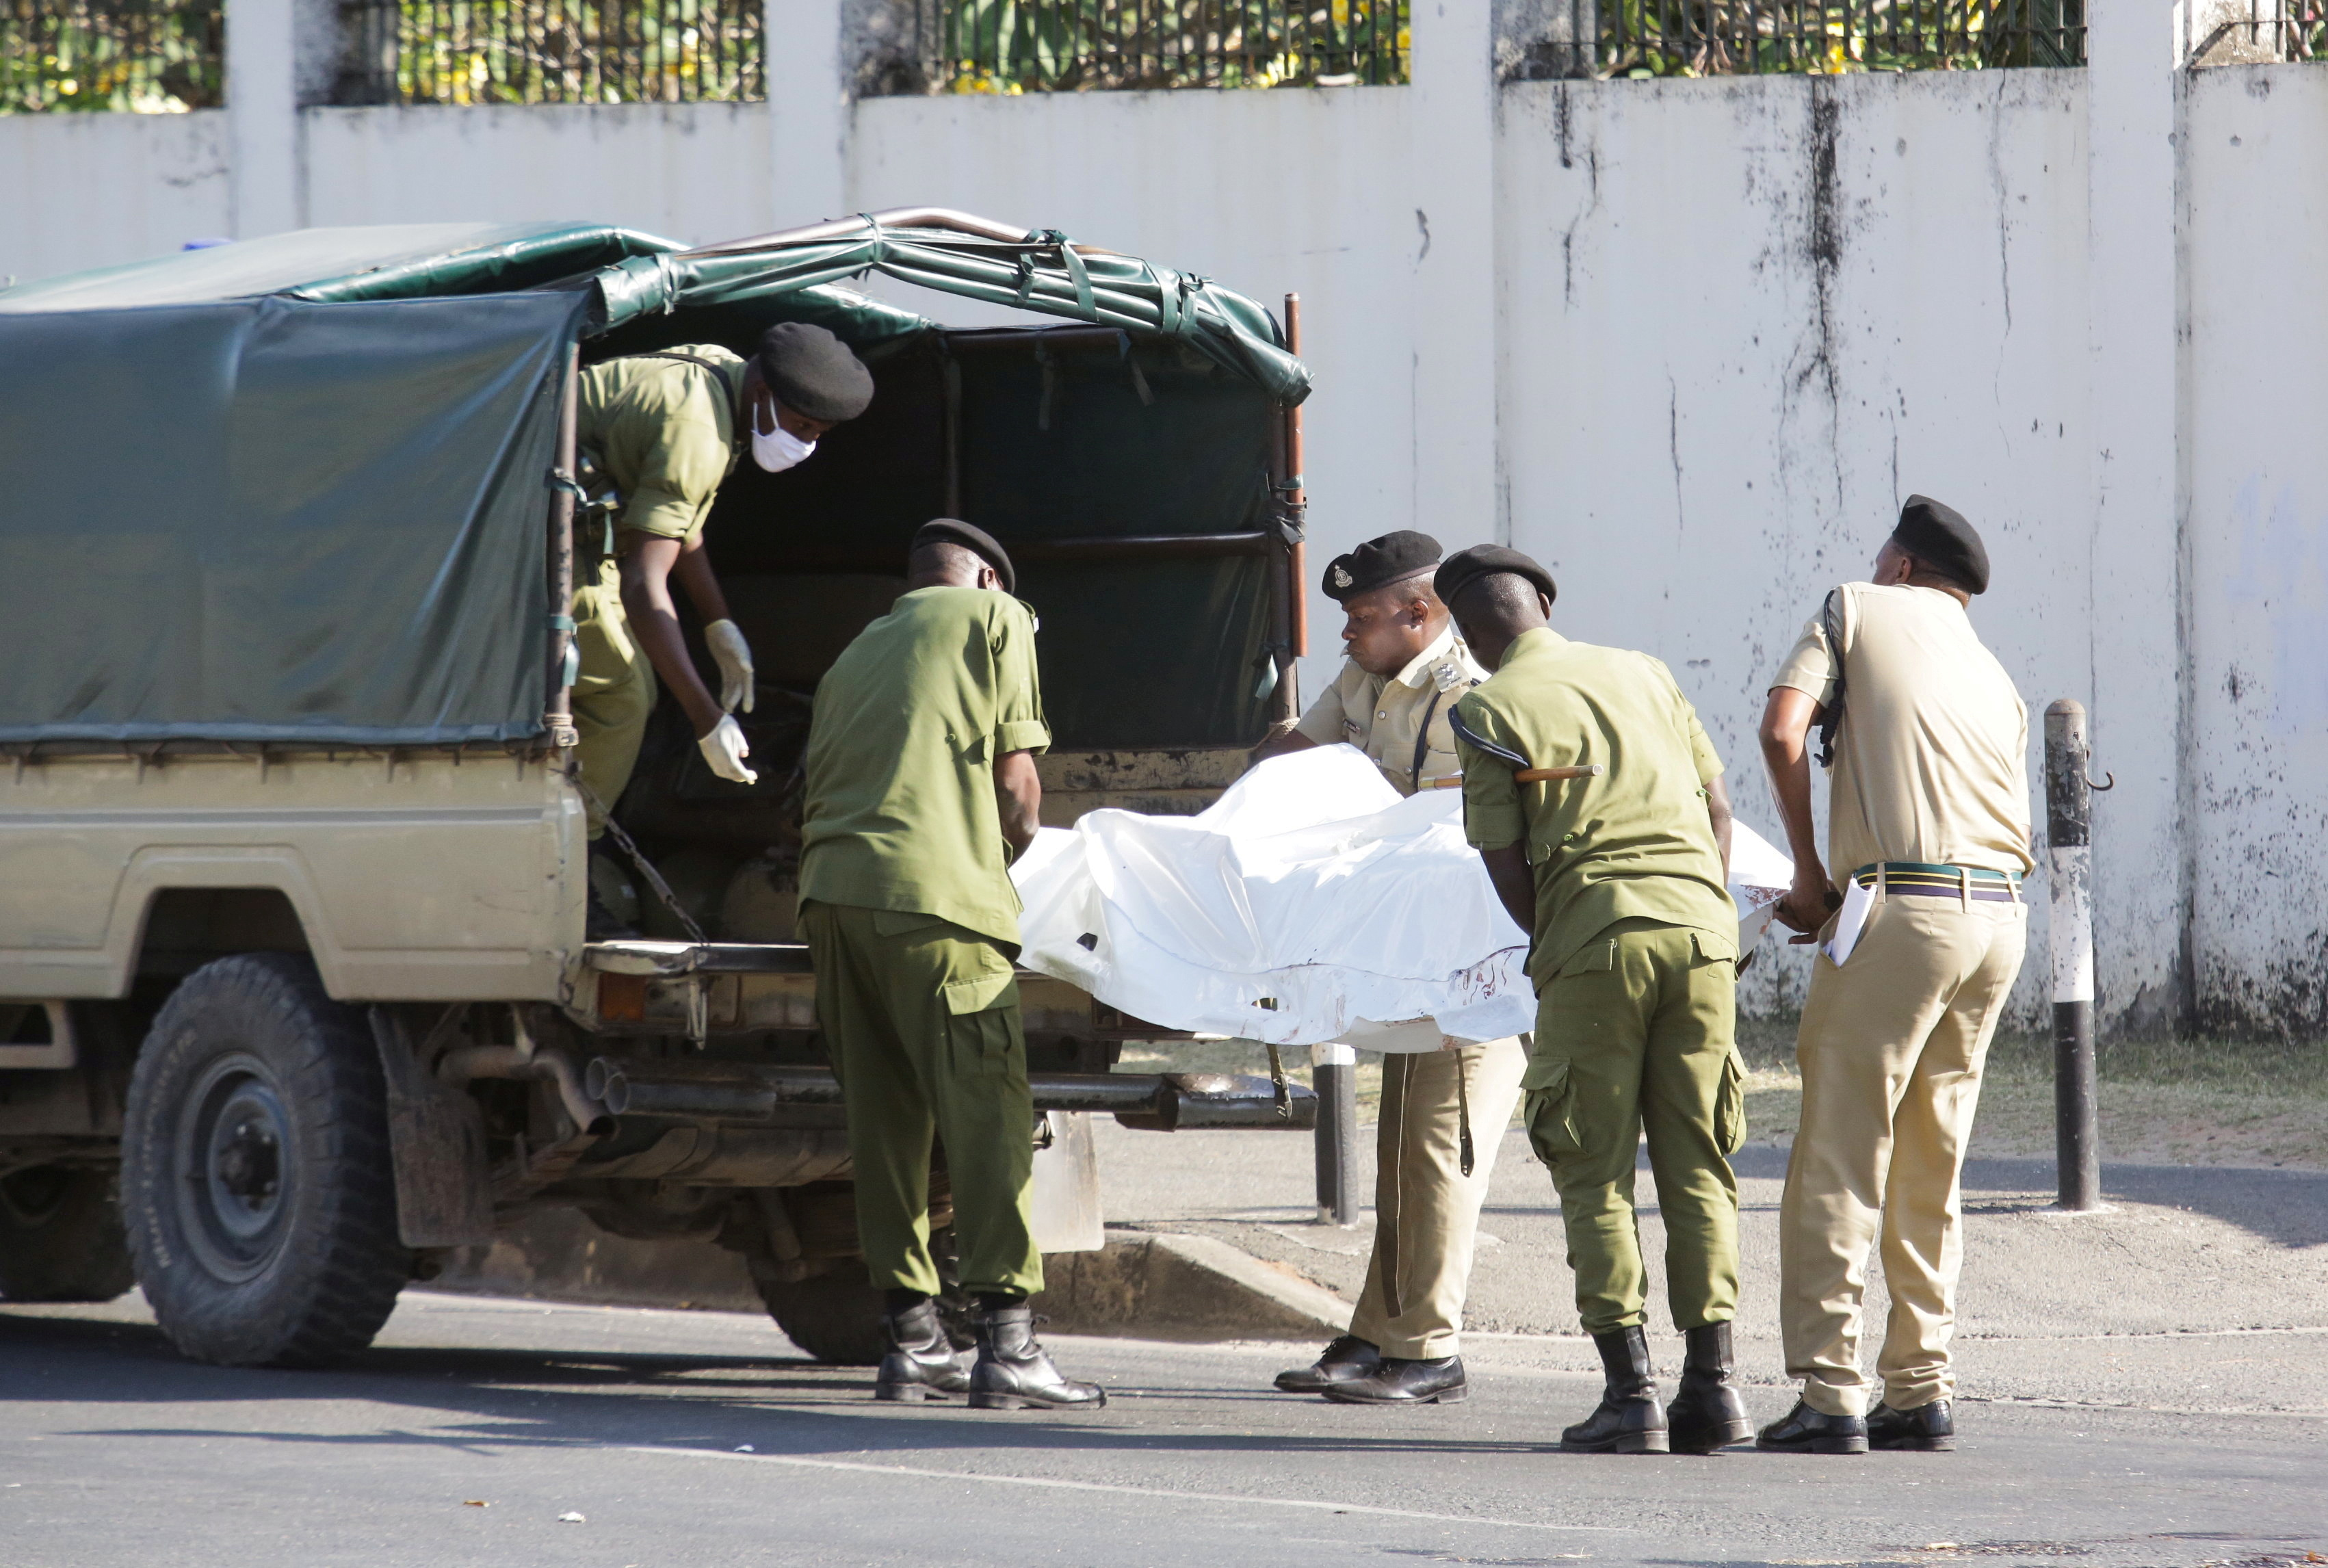 Tanzanian security forces remove the slain body of an attacker who was wielding an assault rifle, outside the French embassy in the Salenda area of Dar es Salaam, Tanzania August 25, 2021. REUTERS/Emmanuel Herman